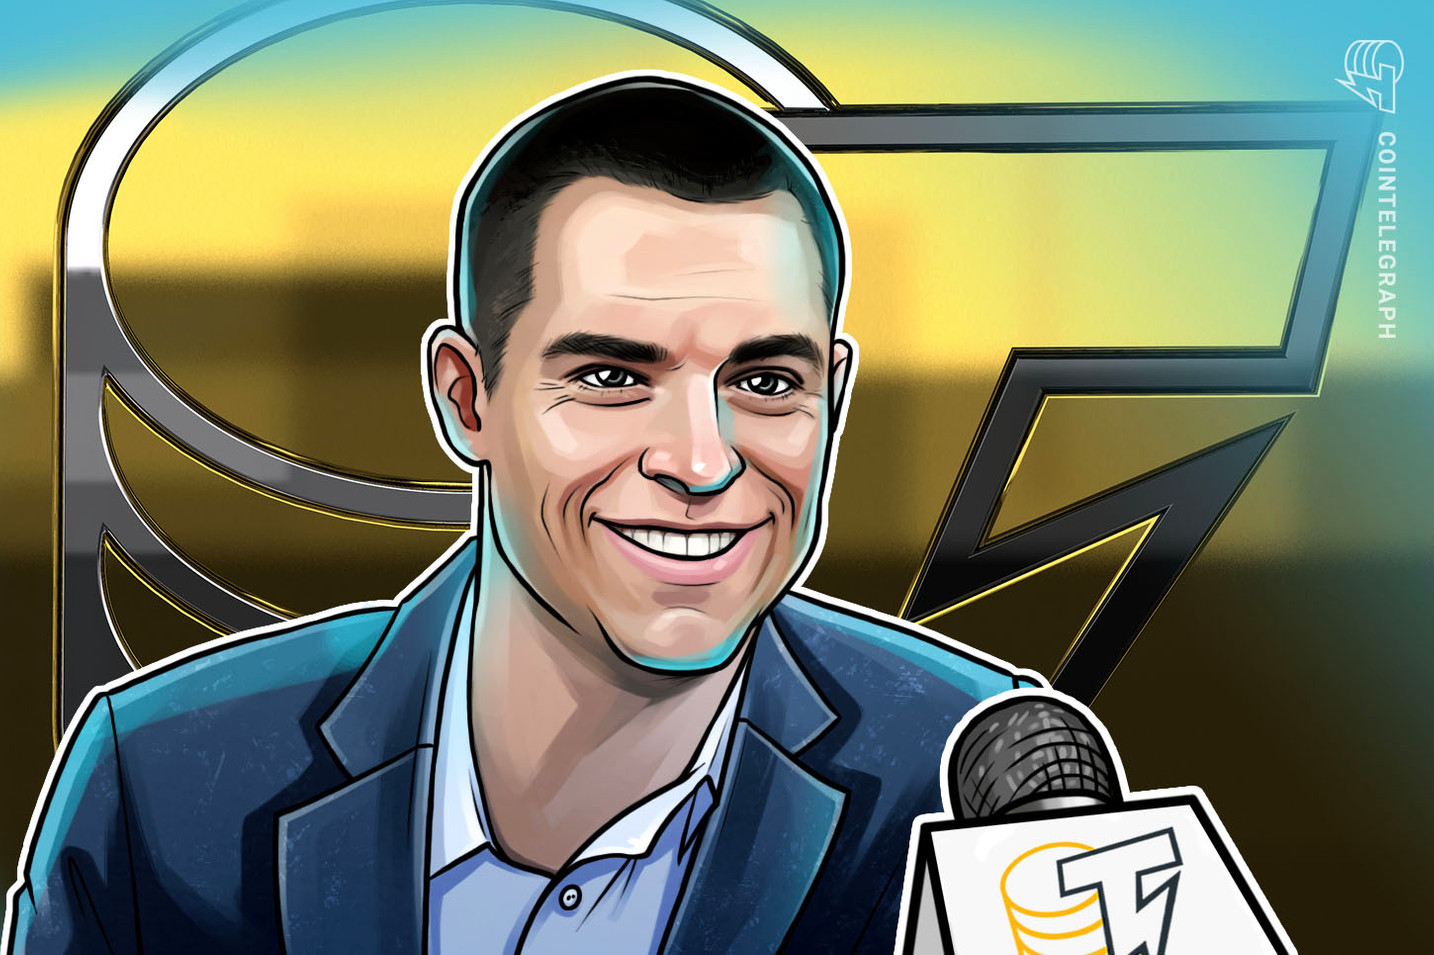 Roger Ver: 'End Lockdown, It's a Matter of Economic Freedom'